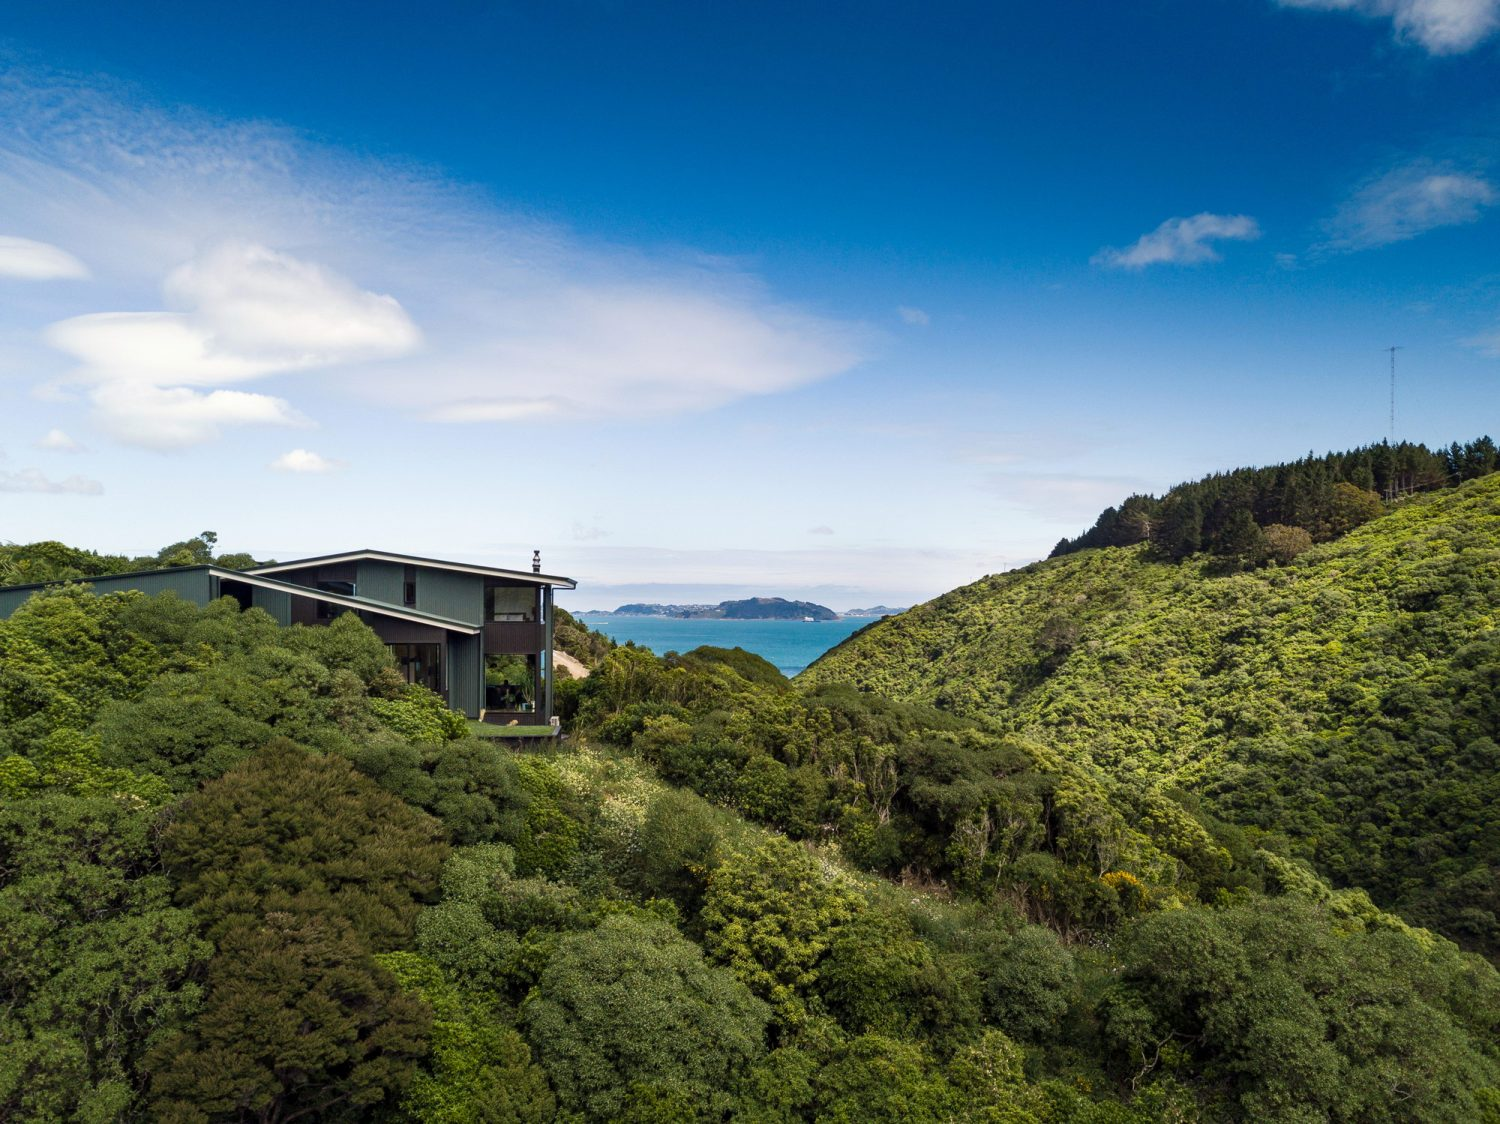 Korokoro Bush House by Parsonson Architects